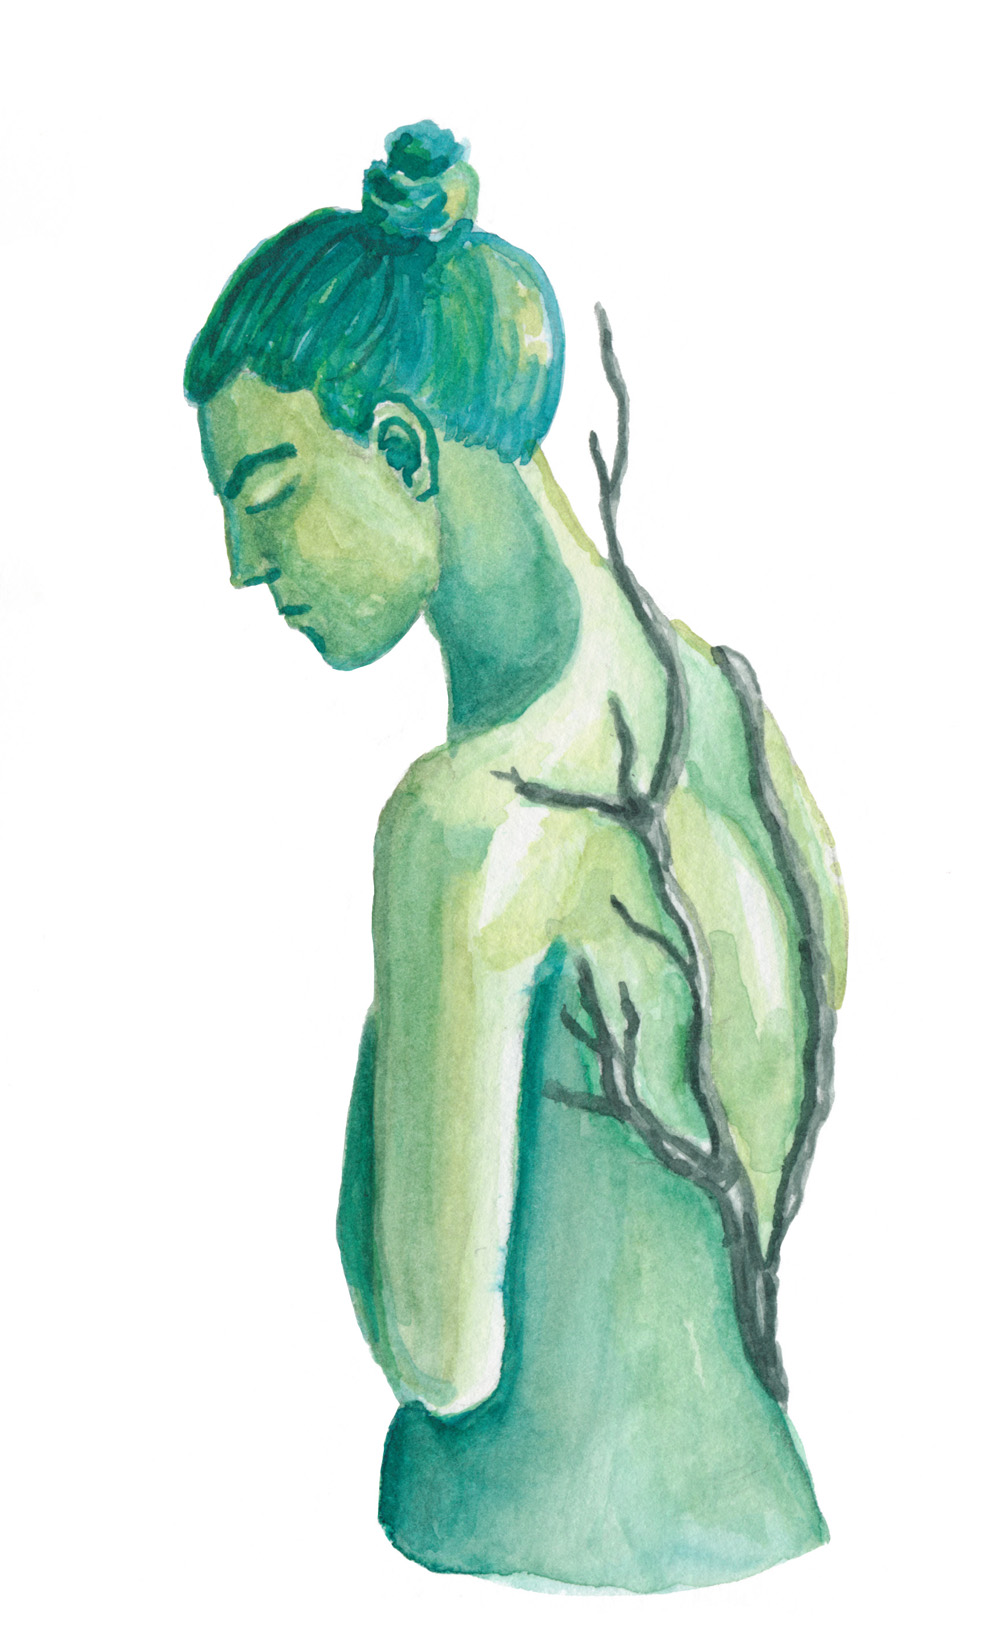 A watercolor painting of a green person with hair in a top knot. They are turned to the side and have their eyes closed. On their back is growing a dark colored vine.